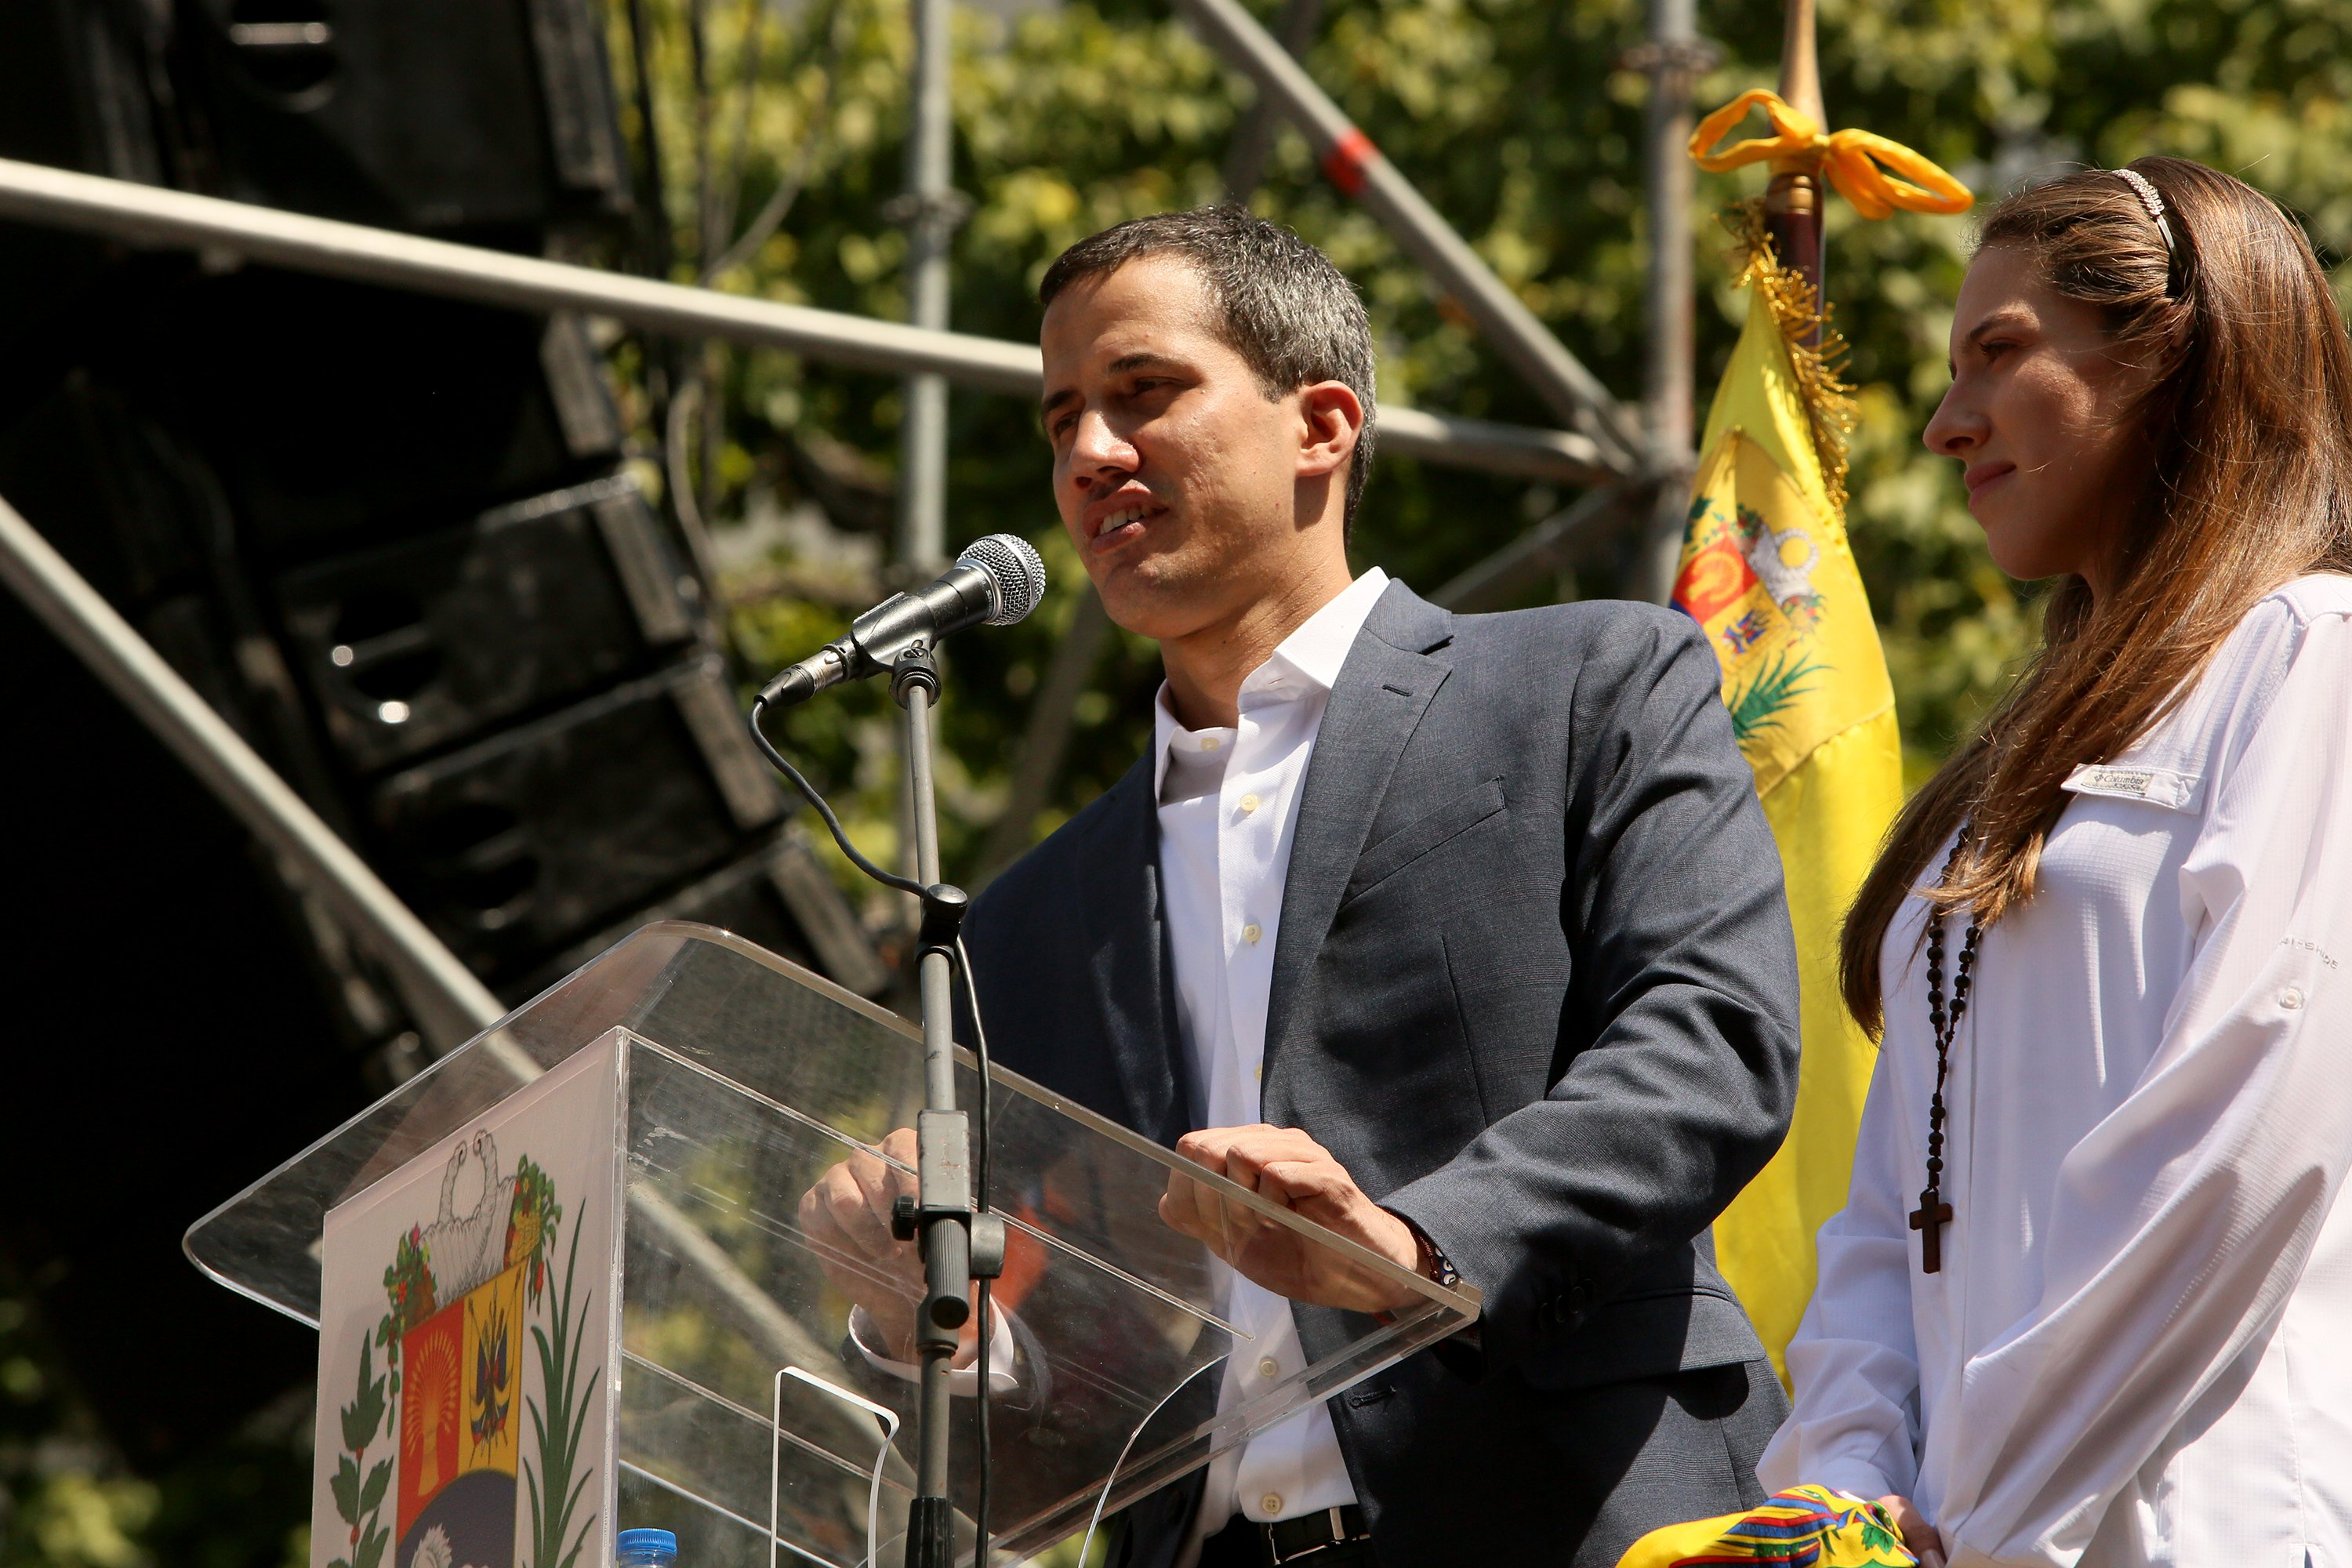 CARACAS, VENEZUELA - FEBRUARY 02: Juan Guaido speaks to demonstrators during a protest against the government of Nicolás Maduro on February 2, 2019 in Caracas, Venezuela. Venezuela's self-declared president and accepted by over 20 countries, Juan Guaidó, called Venezuelans to the streets and demands the resignation of Nicolás Maduro. (Edilzon Gamez/Getty Images)